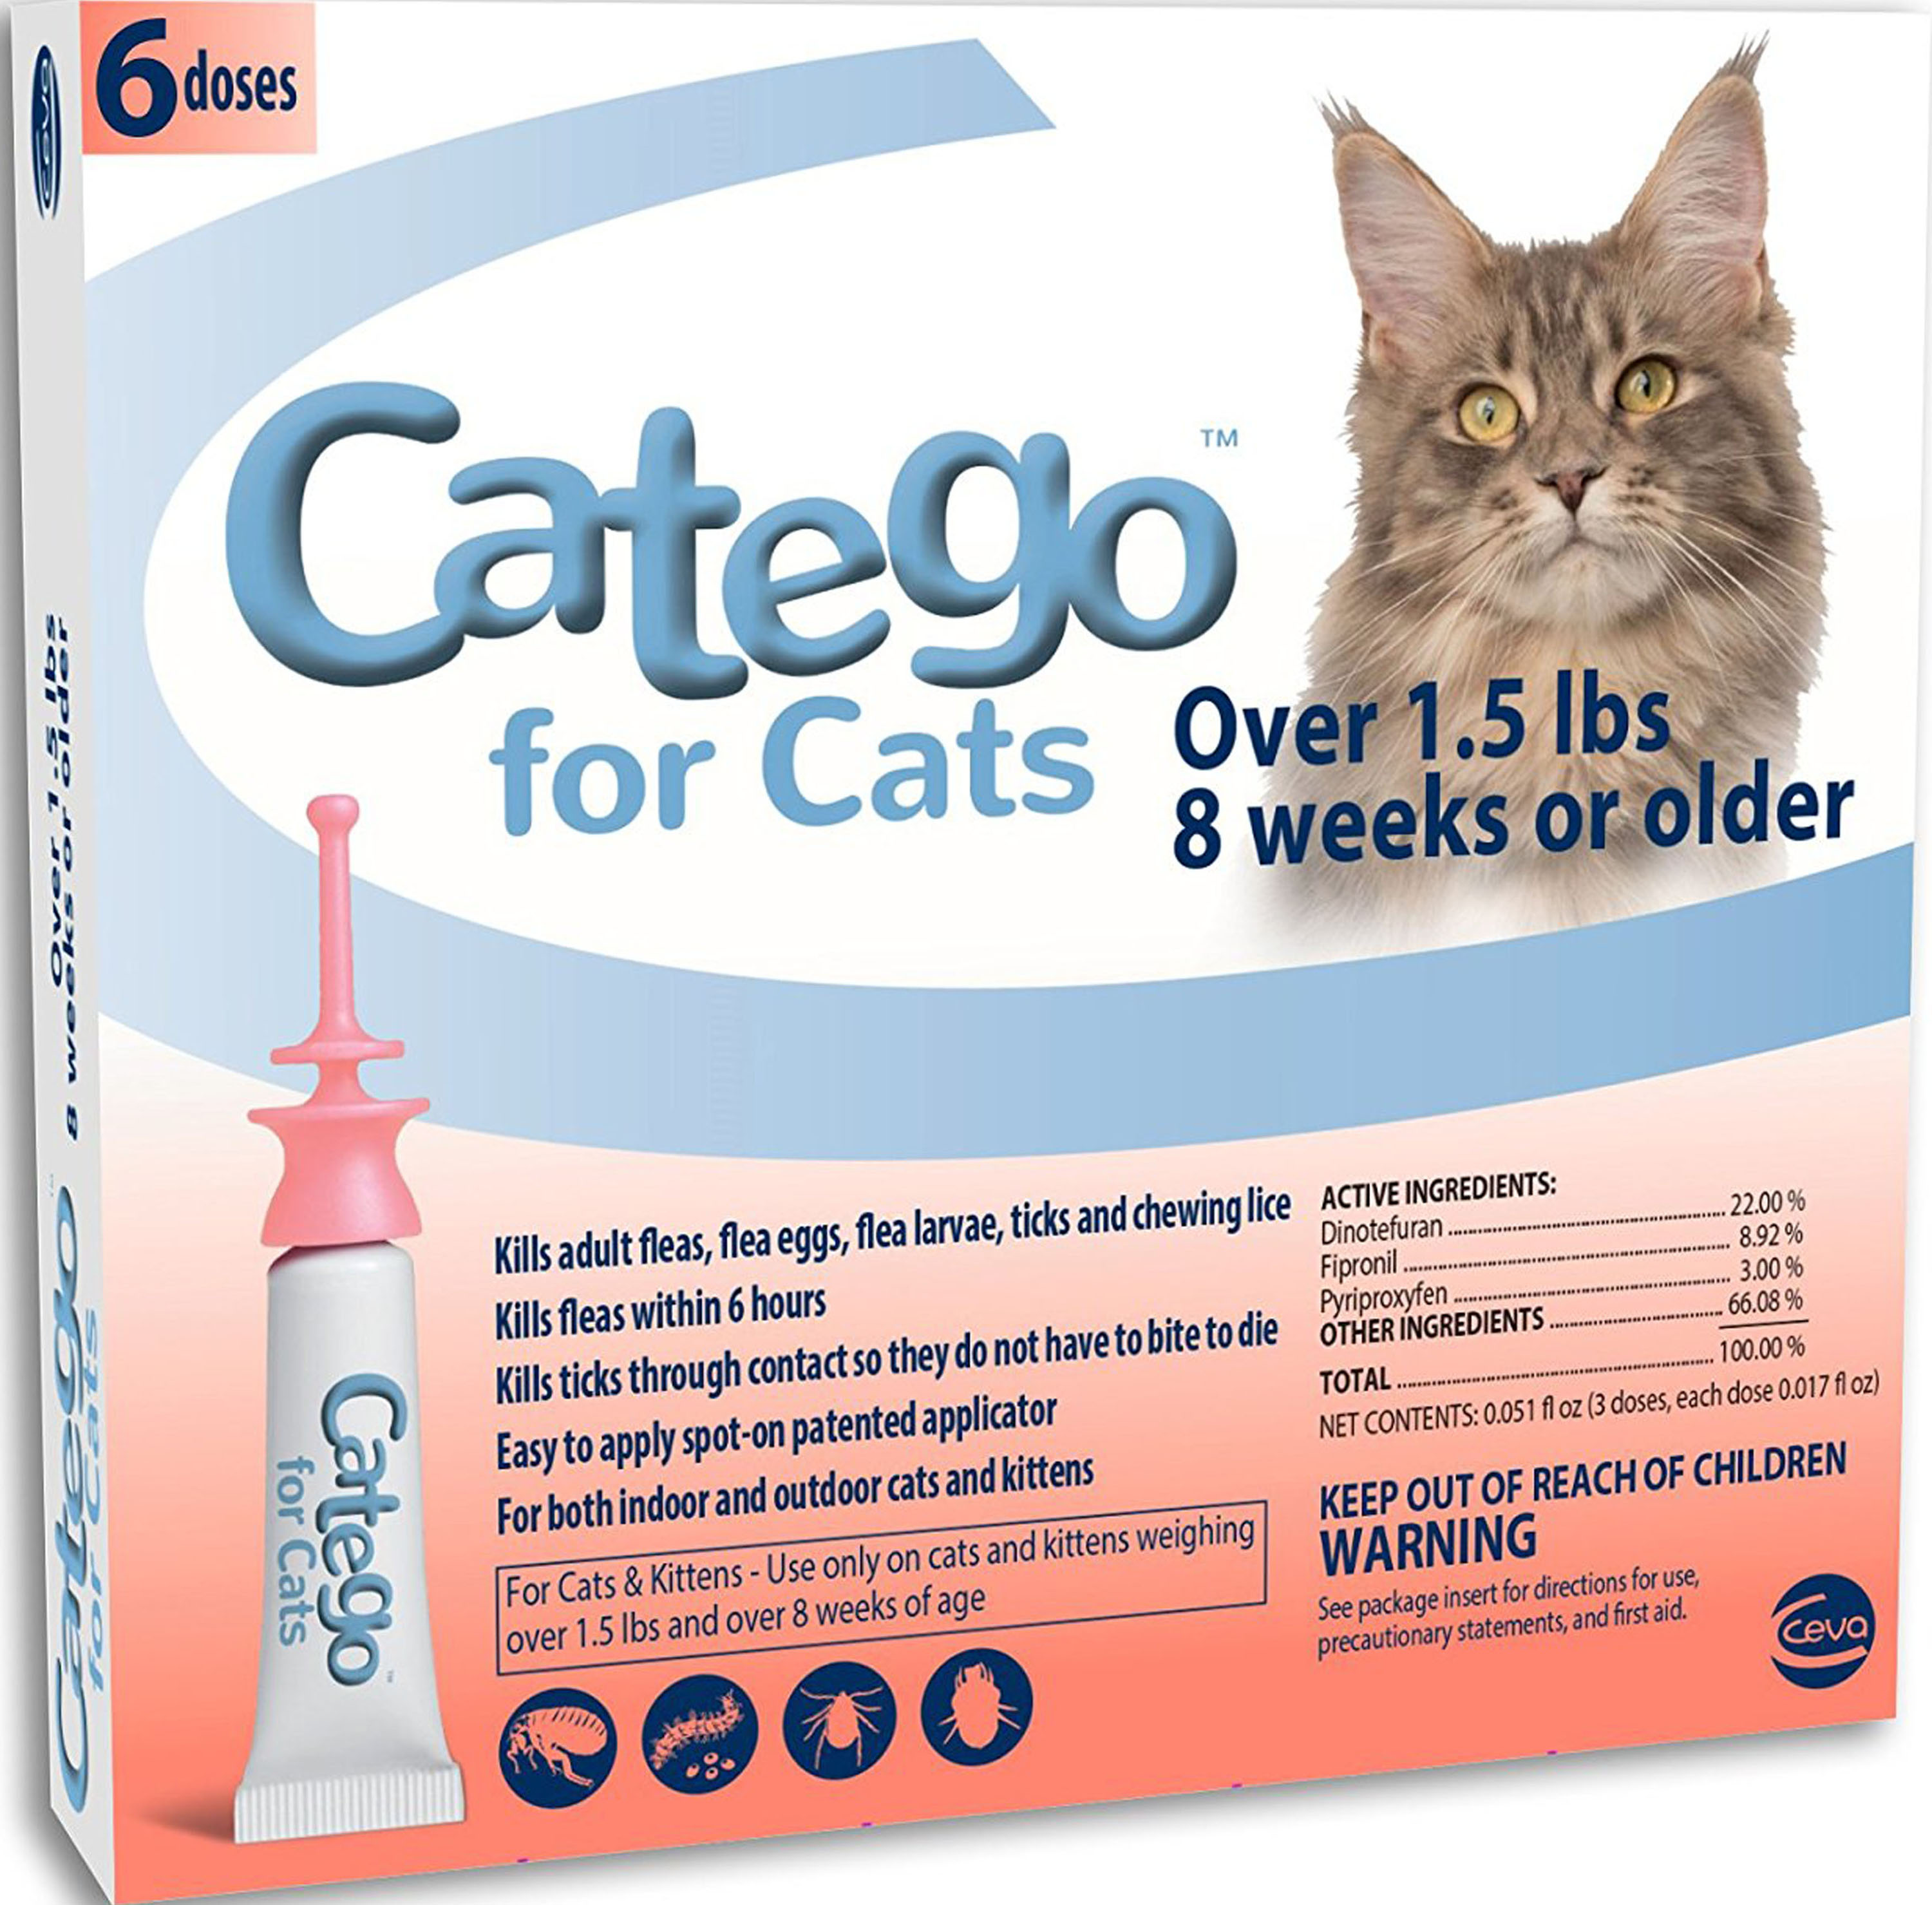 CATEGO FOR CATS OVER 1.5 LBS by Henry and Clemmies